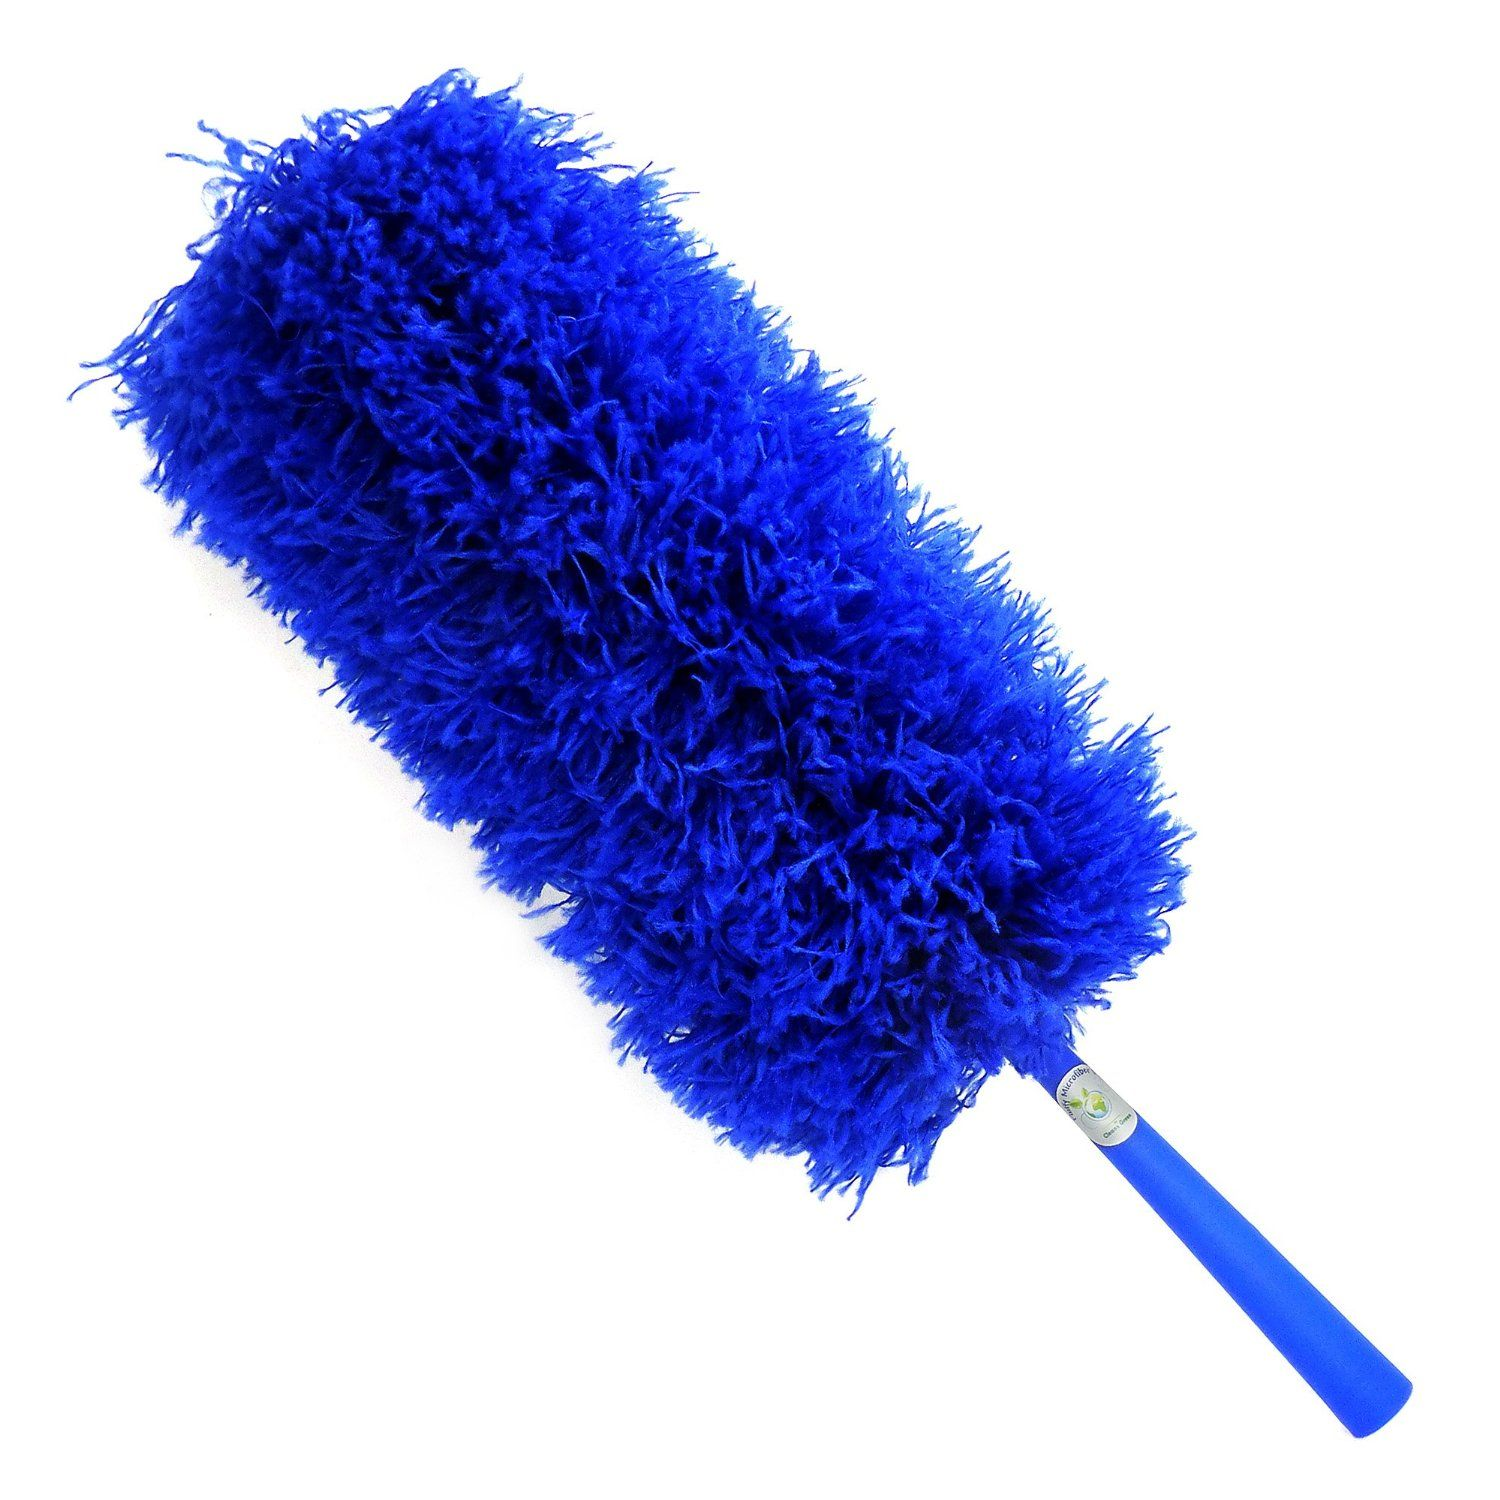 Awesome Green Cleaning Tool Beautiful Blue Fluffy